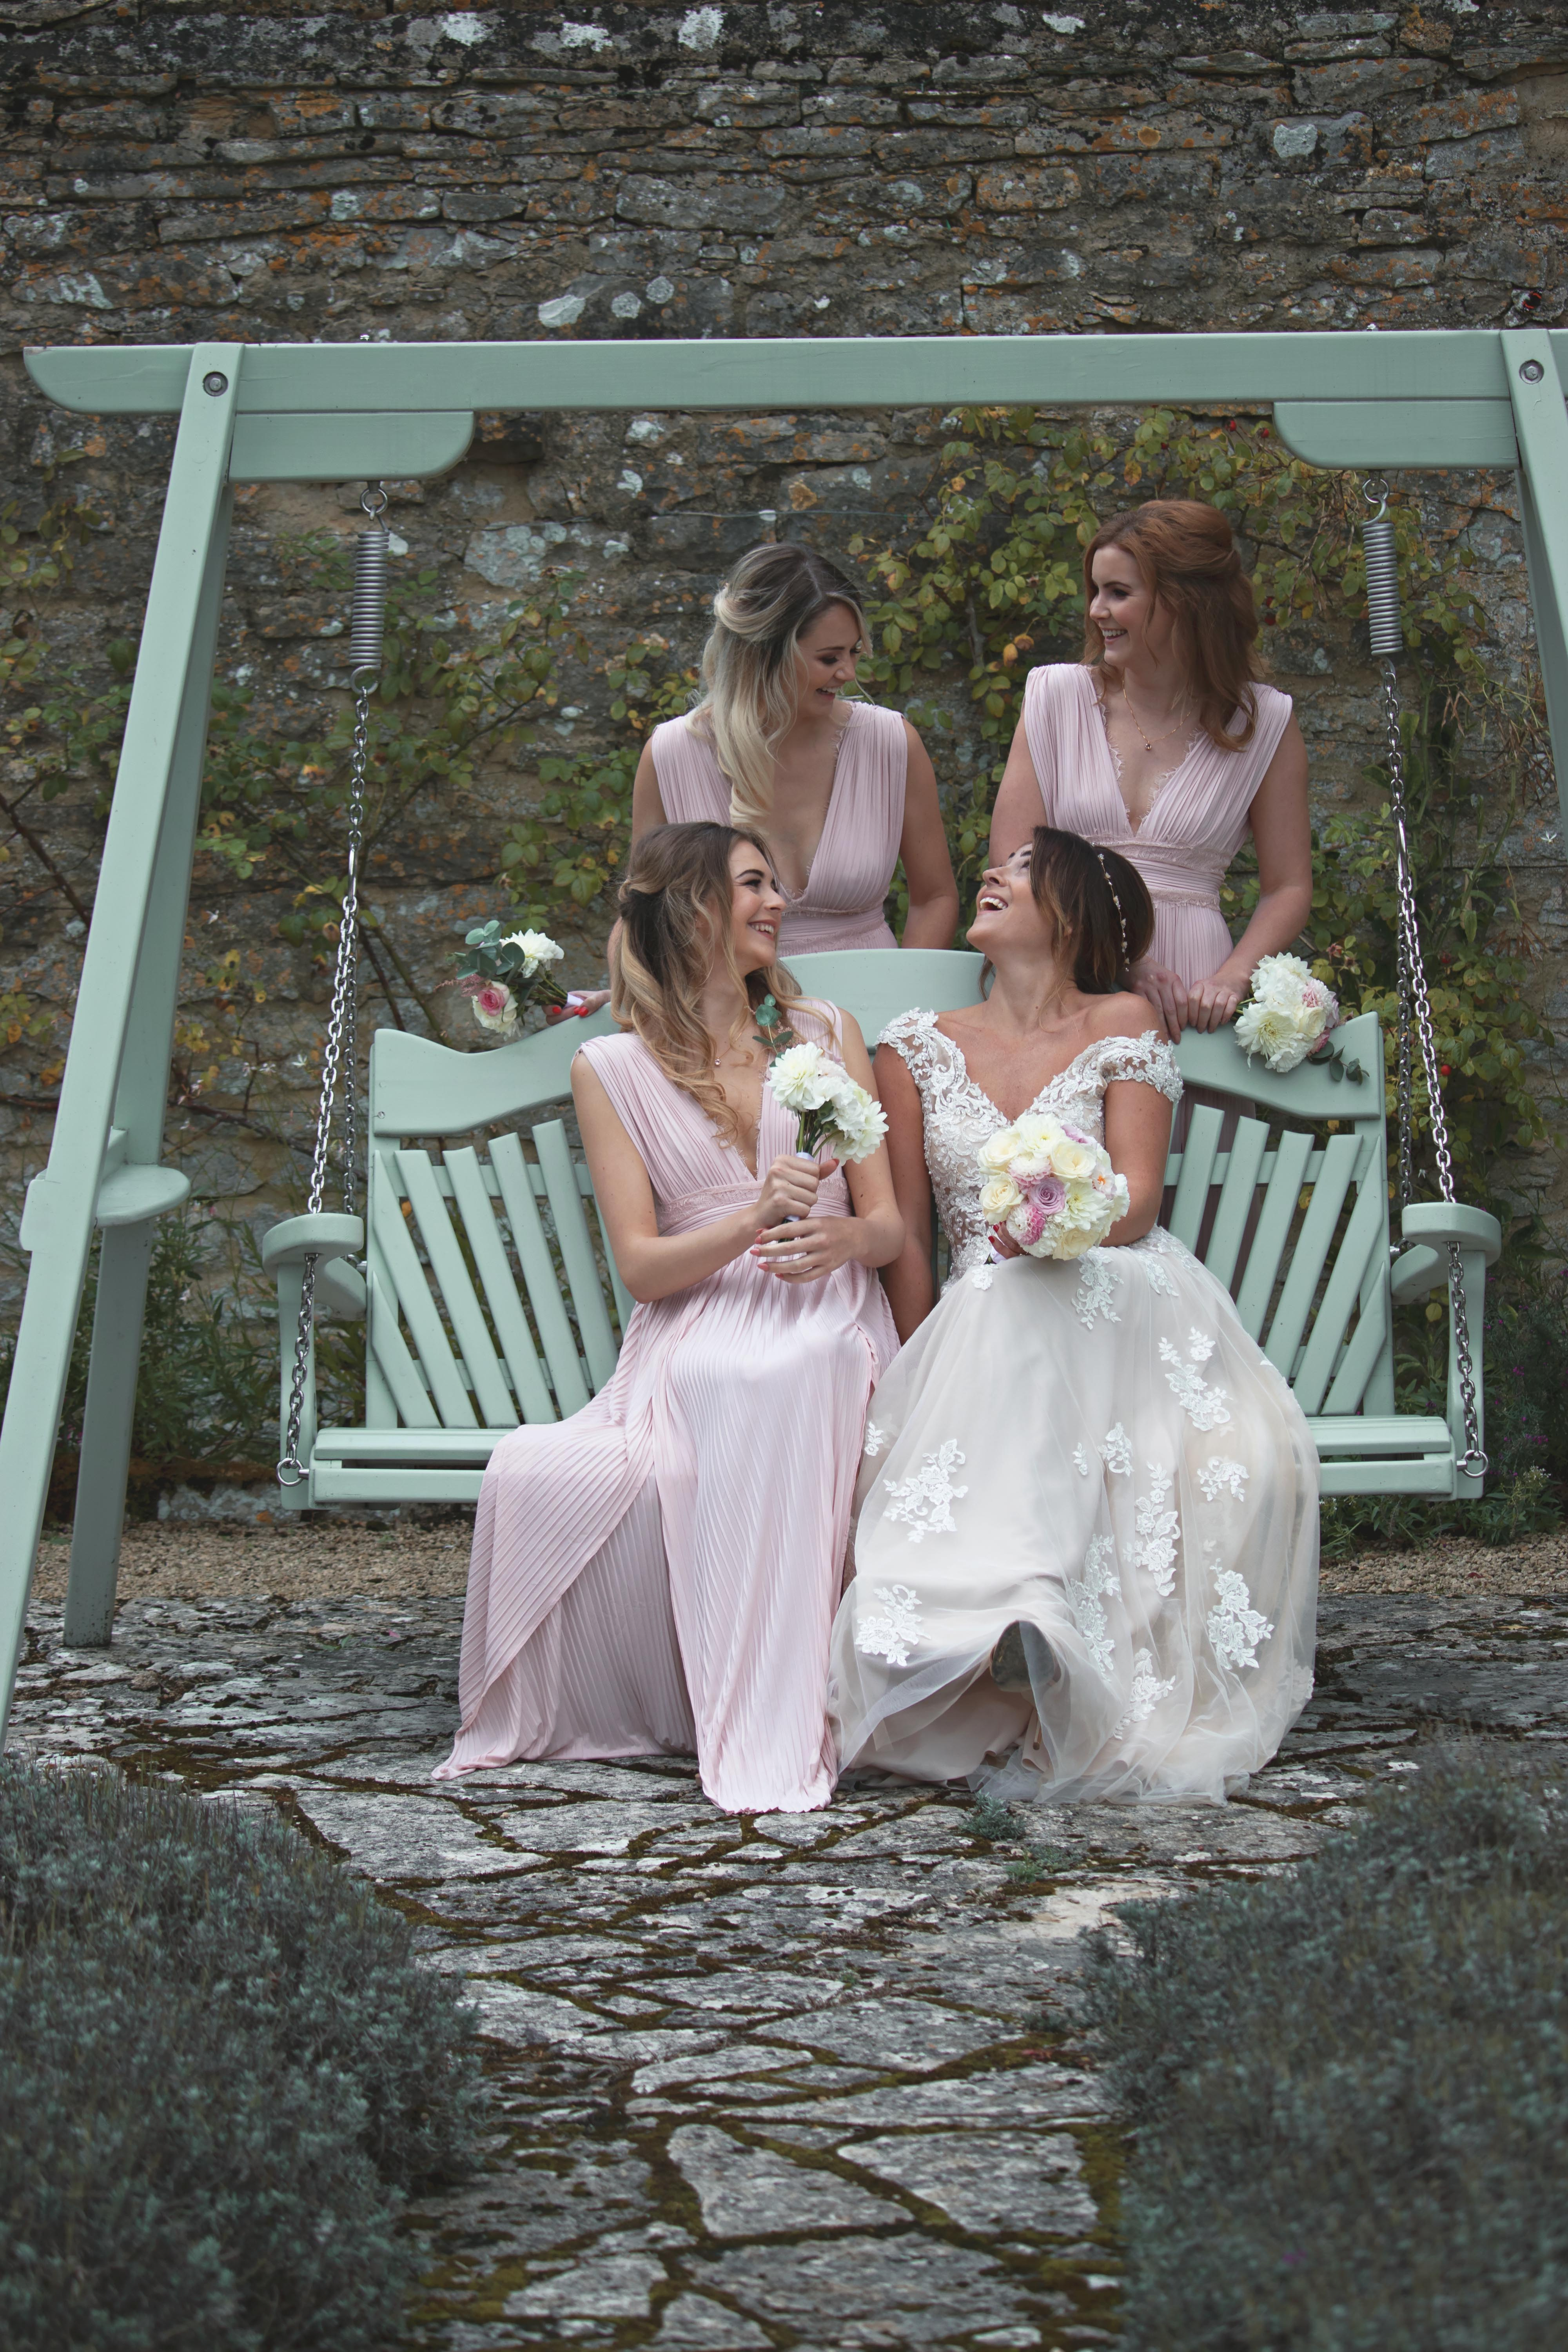 Relaxed Shots of Bride and Bridesmaids